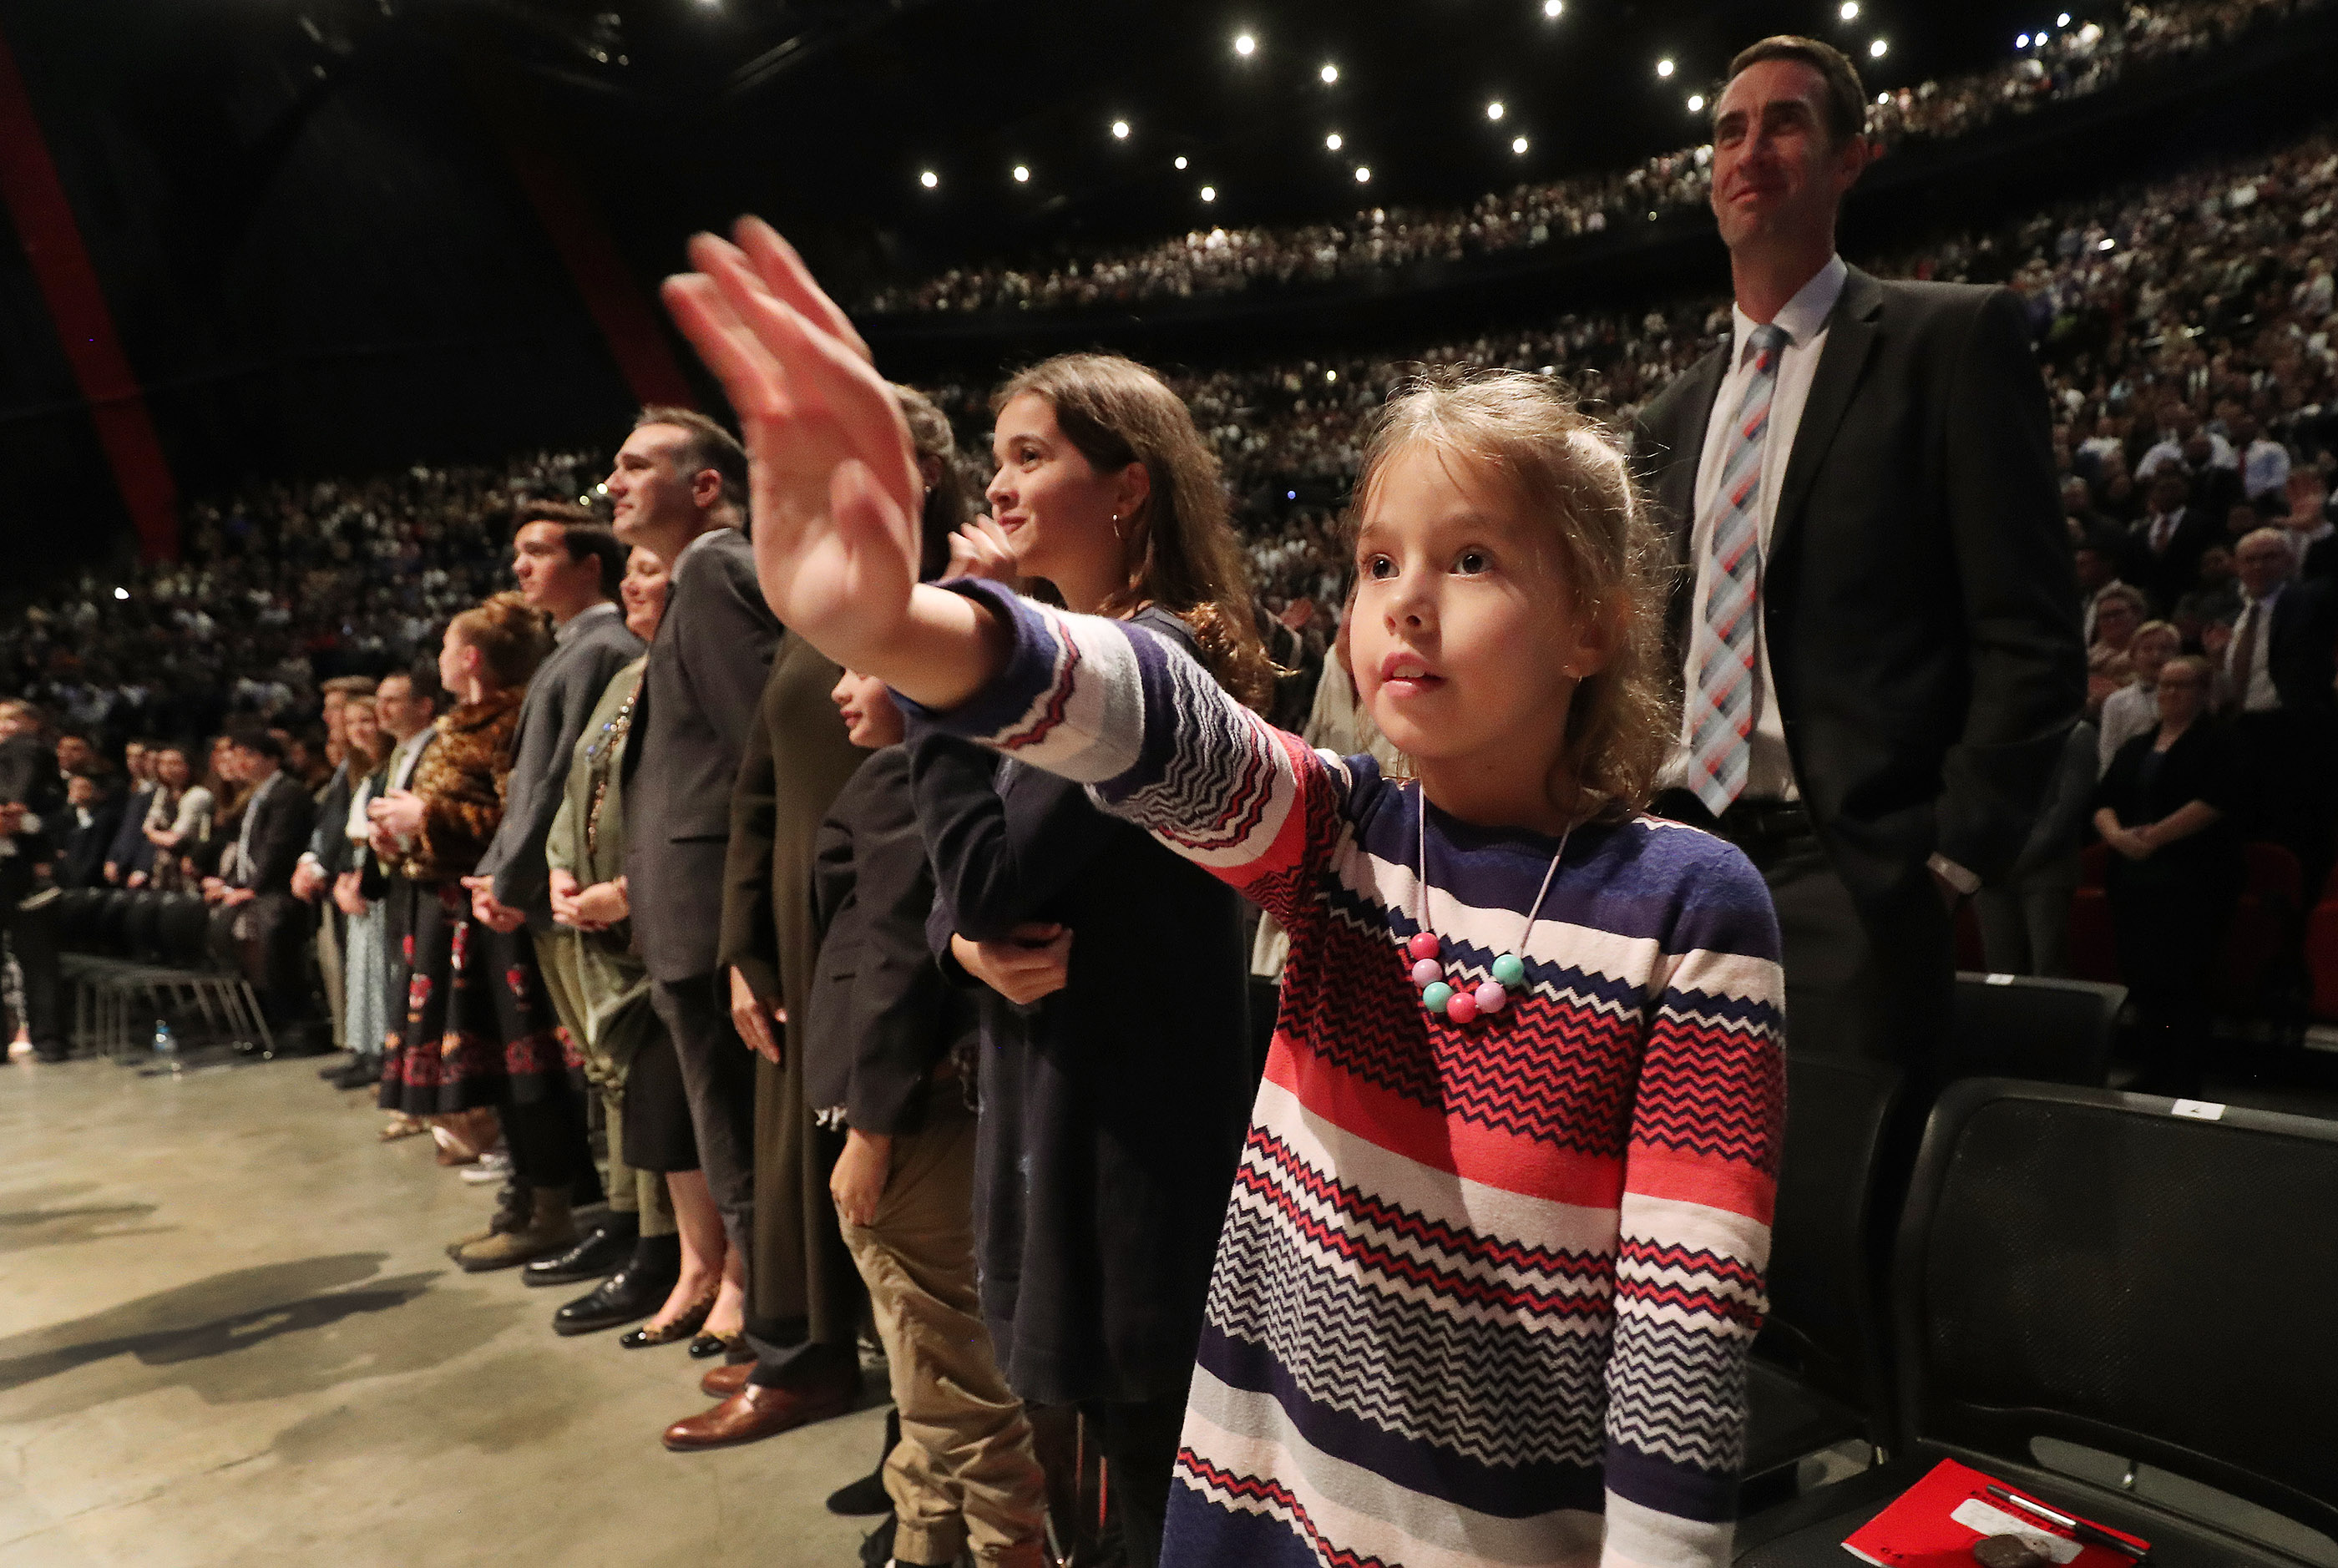 Isla Dunn, 7, waves to President Russell M. Nelson of The Church of Jesus Christ of Latter-day Saints at the International Conference Center on May 19, 2019, in Sydney, Australia.